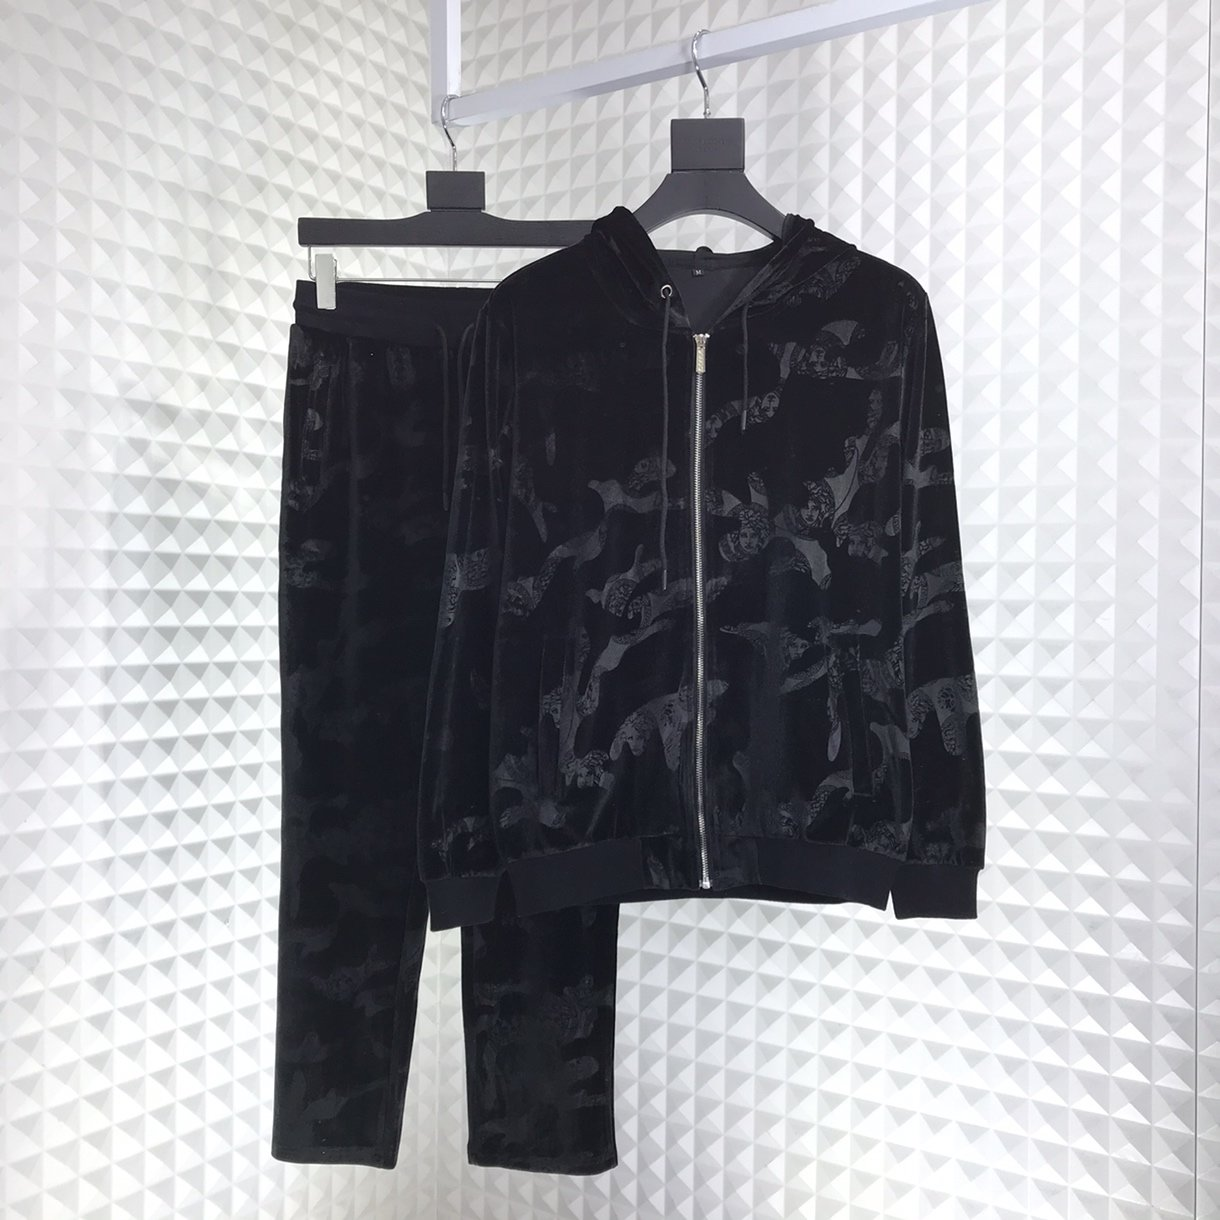 2019 New Cheap Gucci Tracksuits For Men # 211006, cheap Gucci Tracksuits, only $82!